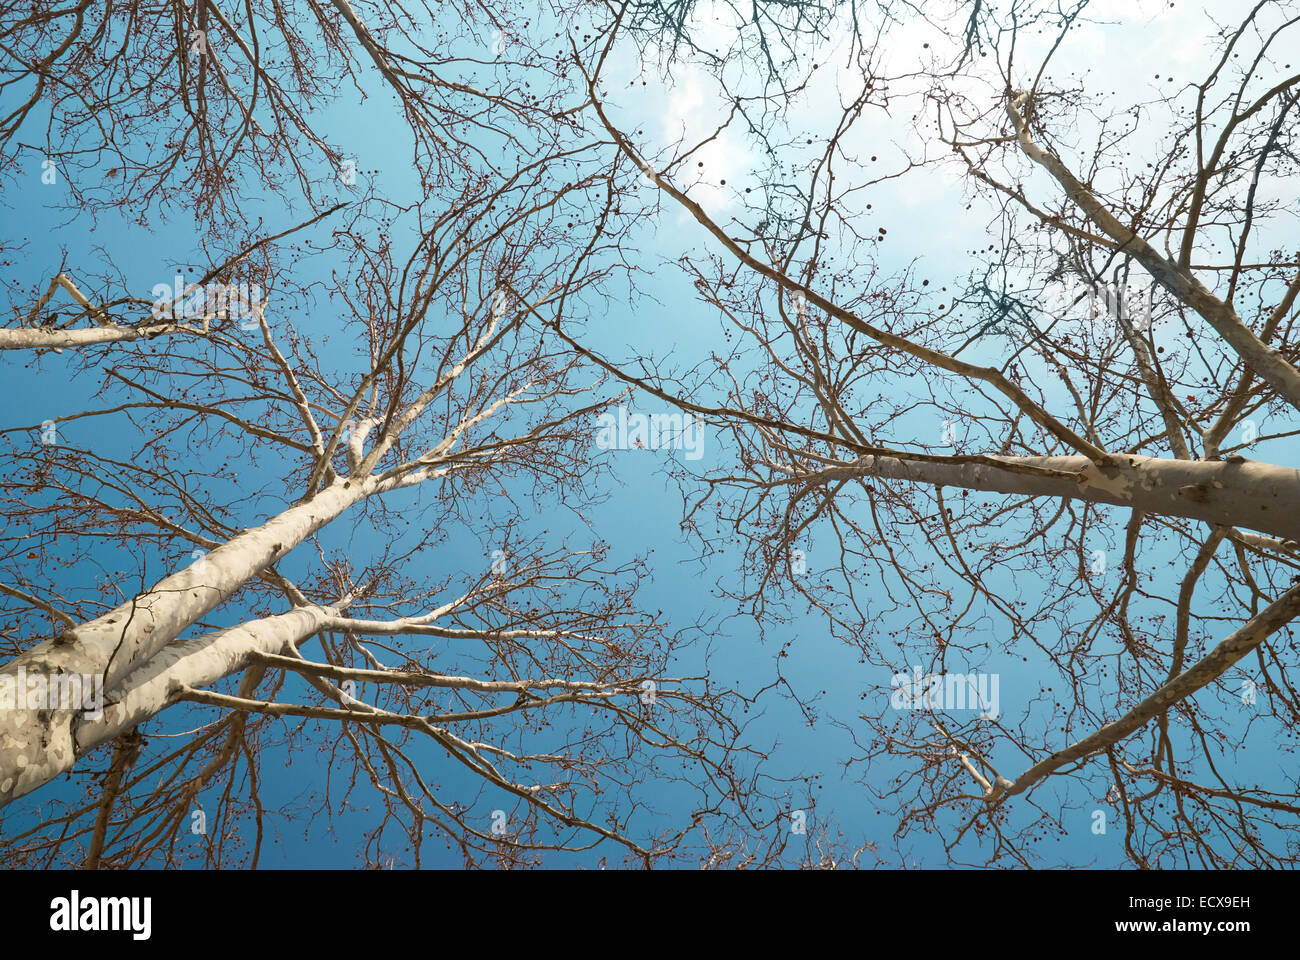 Spring treetops with blue sky and clouds - Stock Image